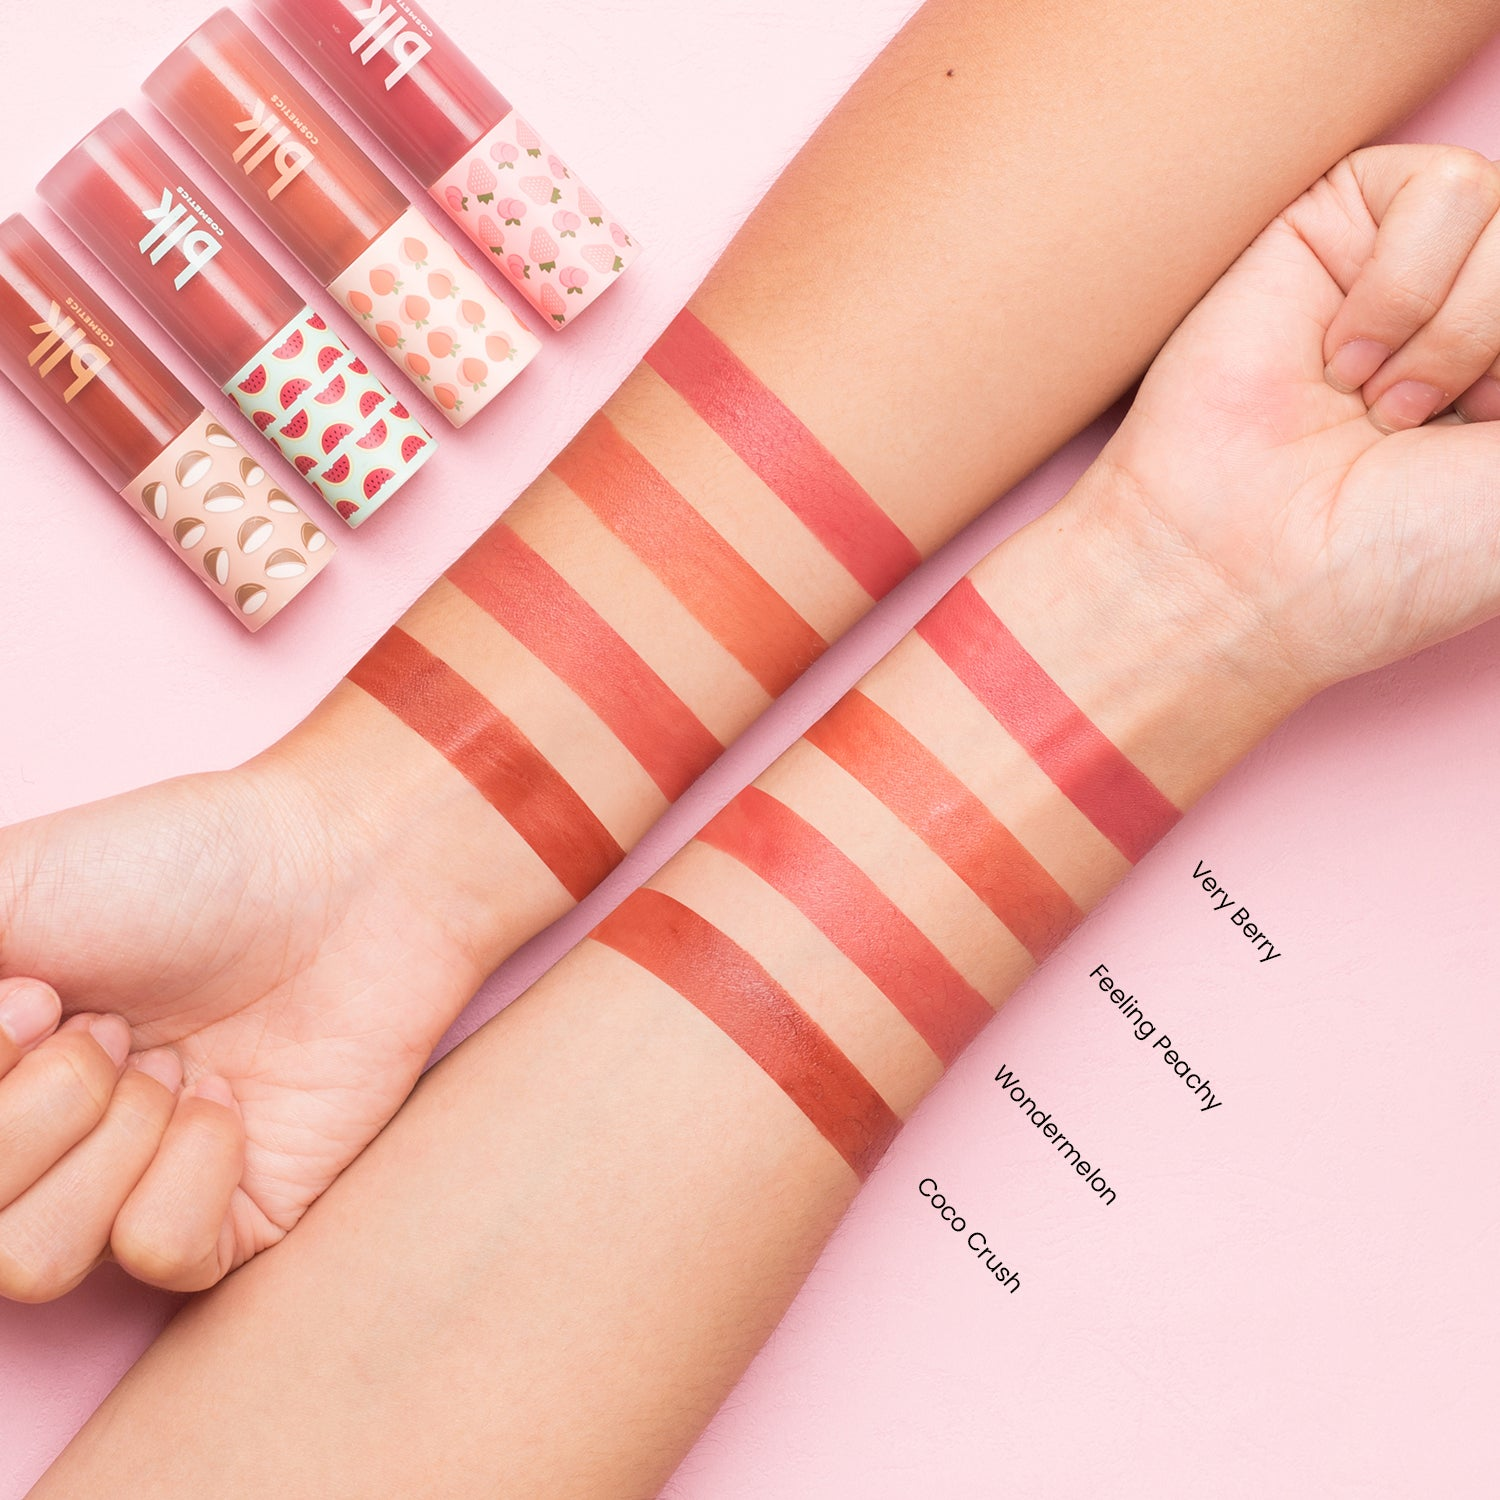 blk cosmetics Creamy All-Over Paint - Fresh Collection Arm Swatch